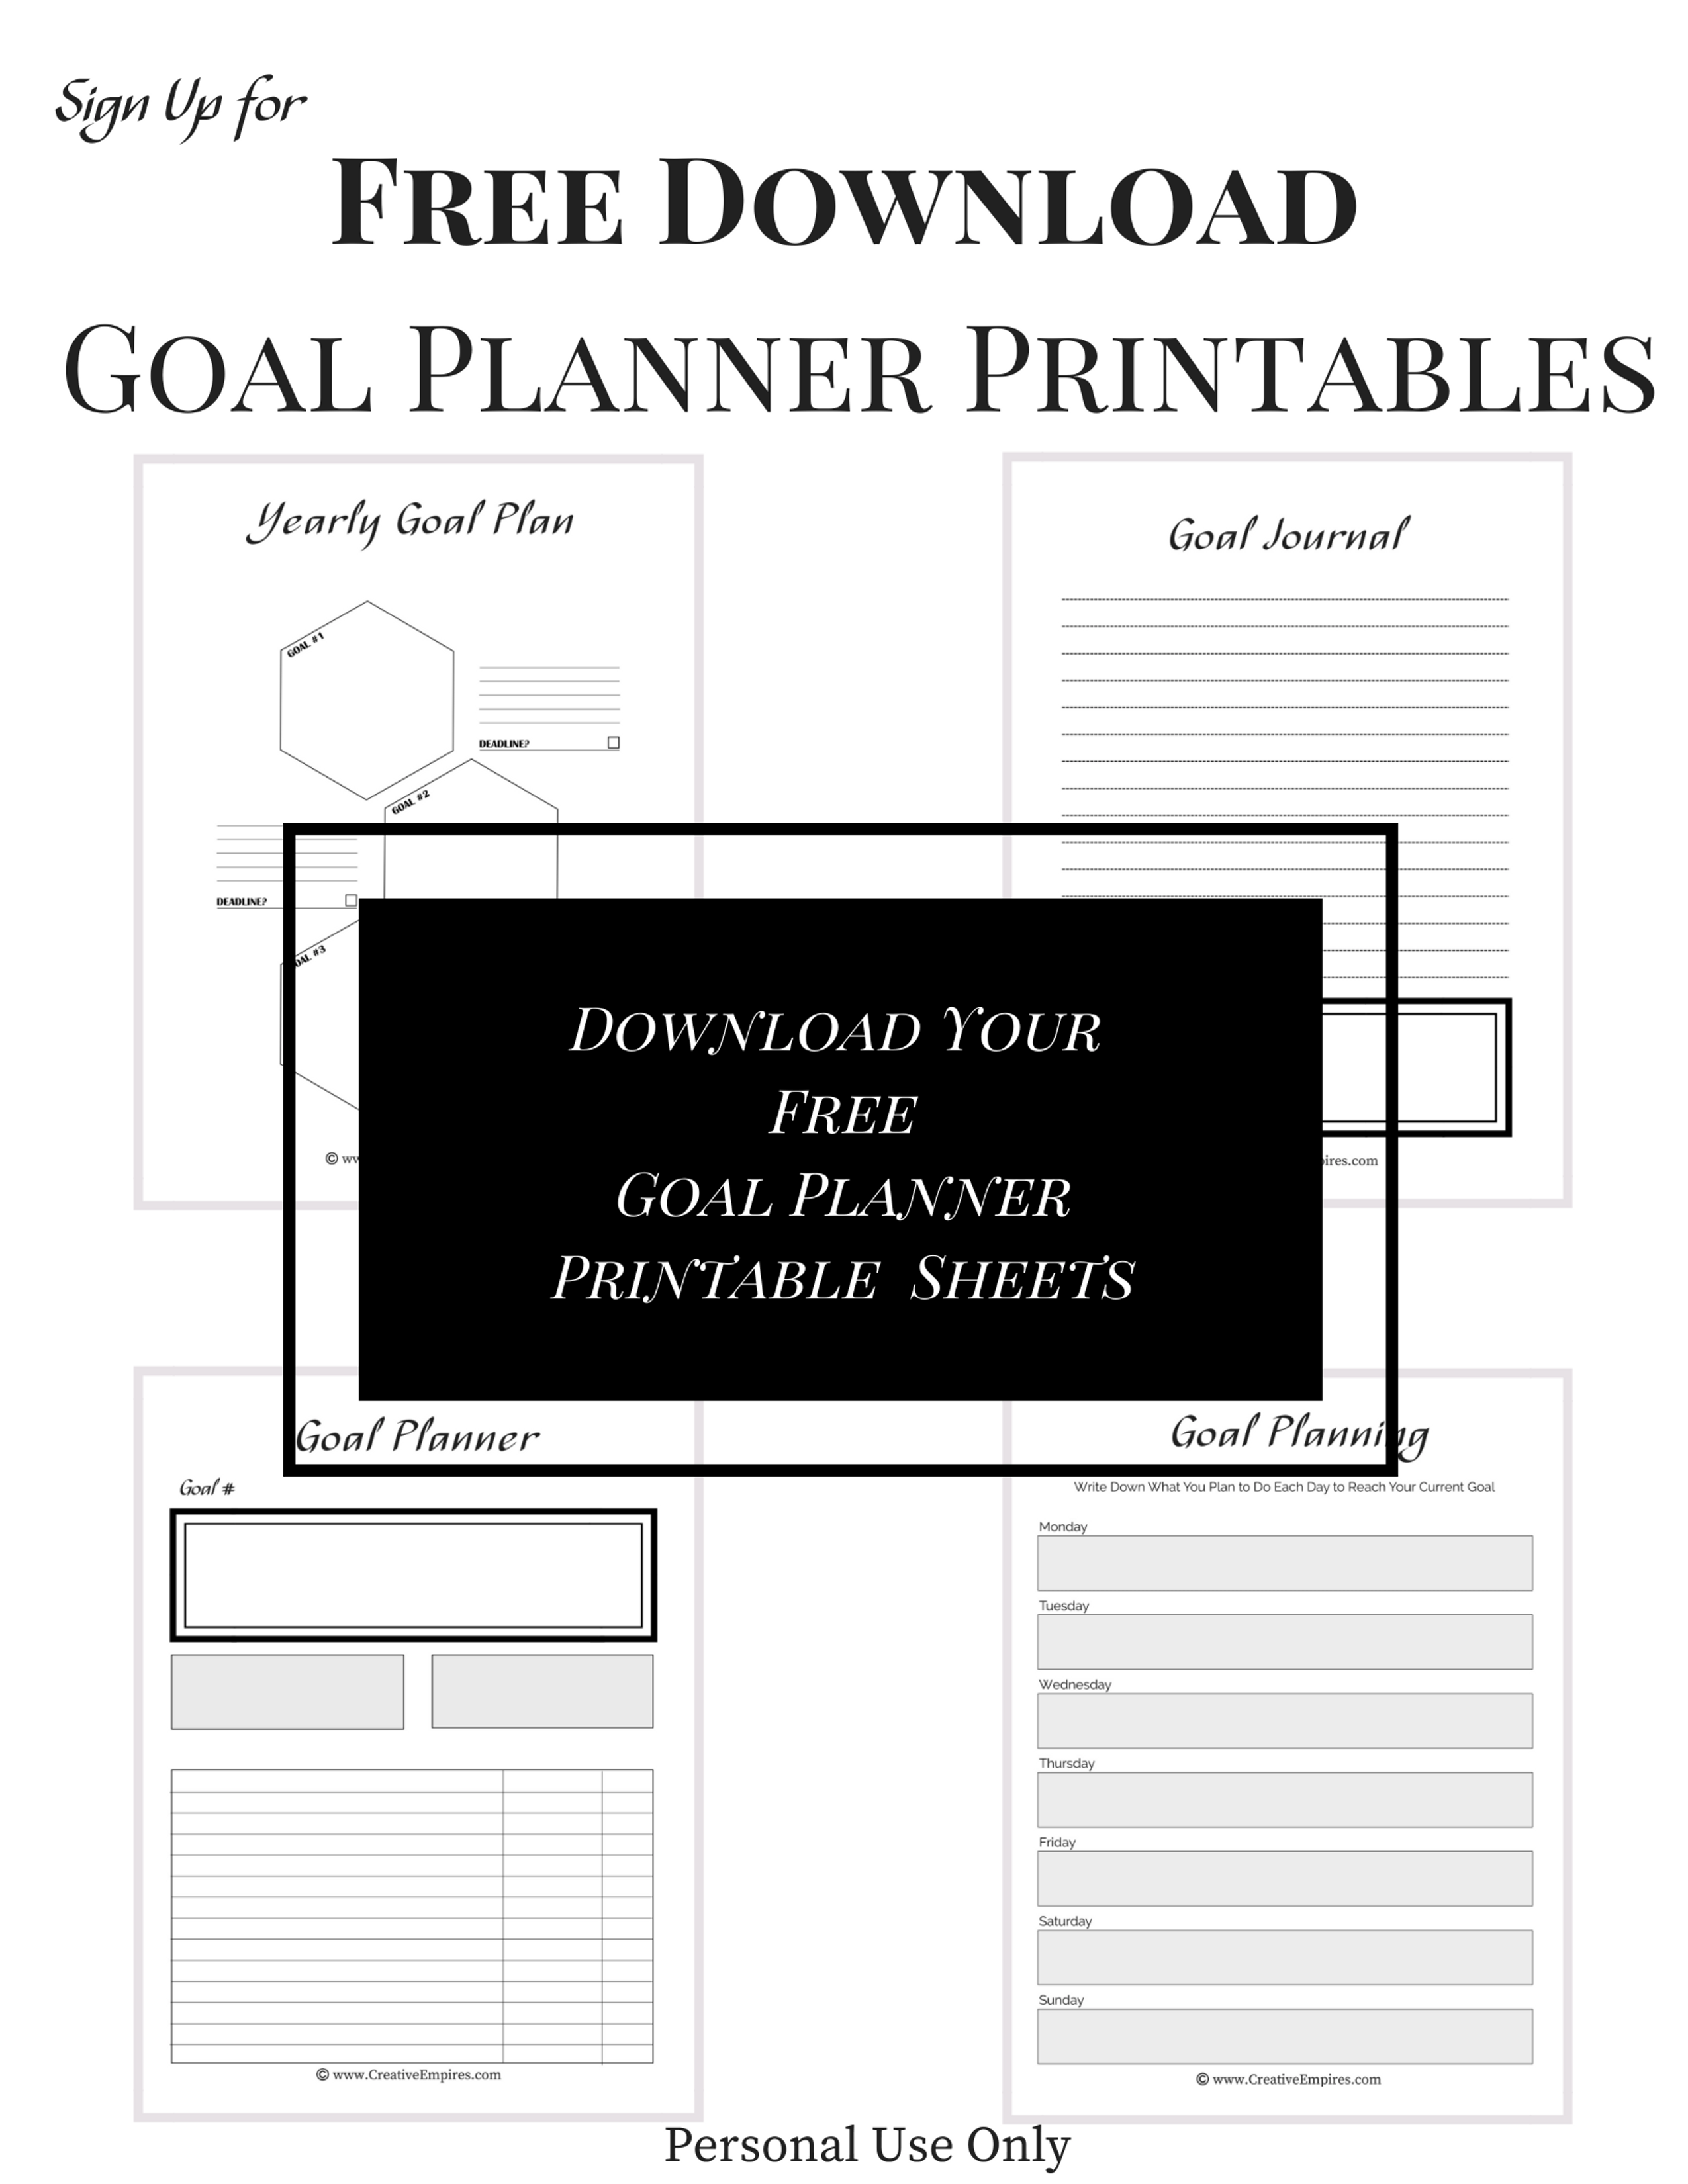 Goal Planning Printables 4 Sheets